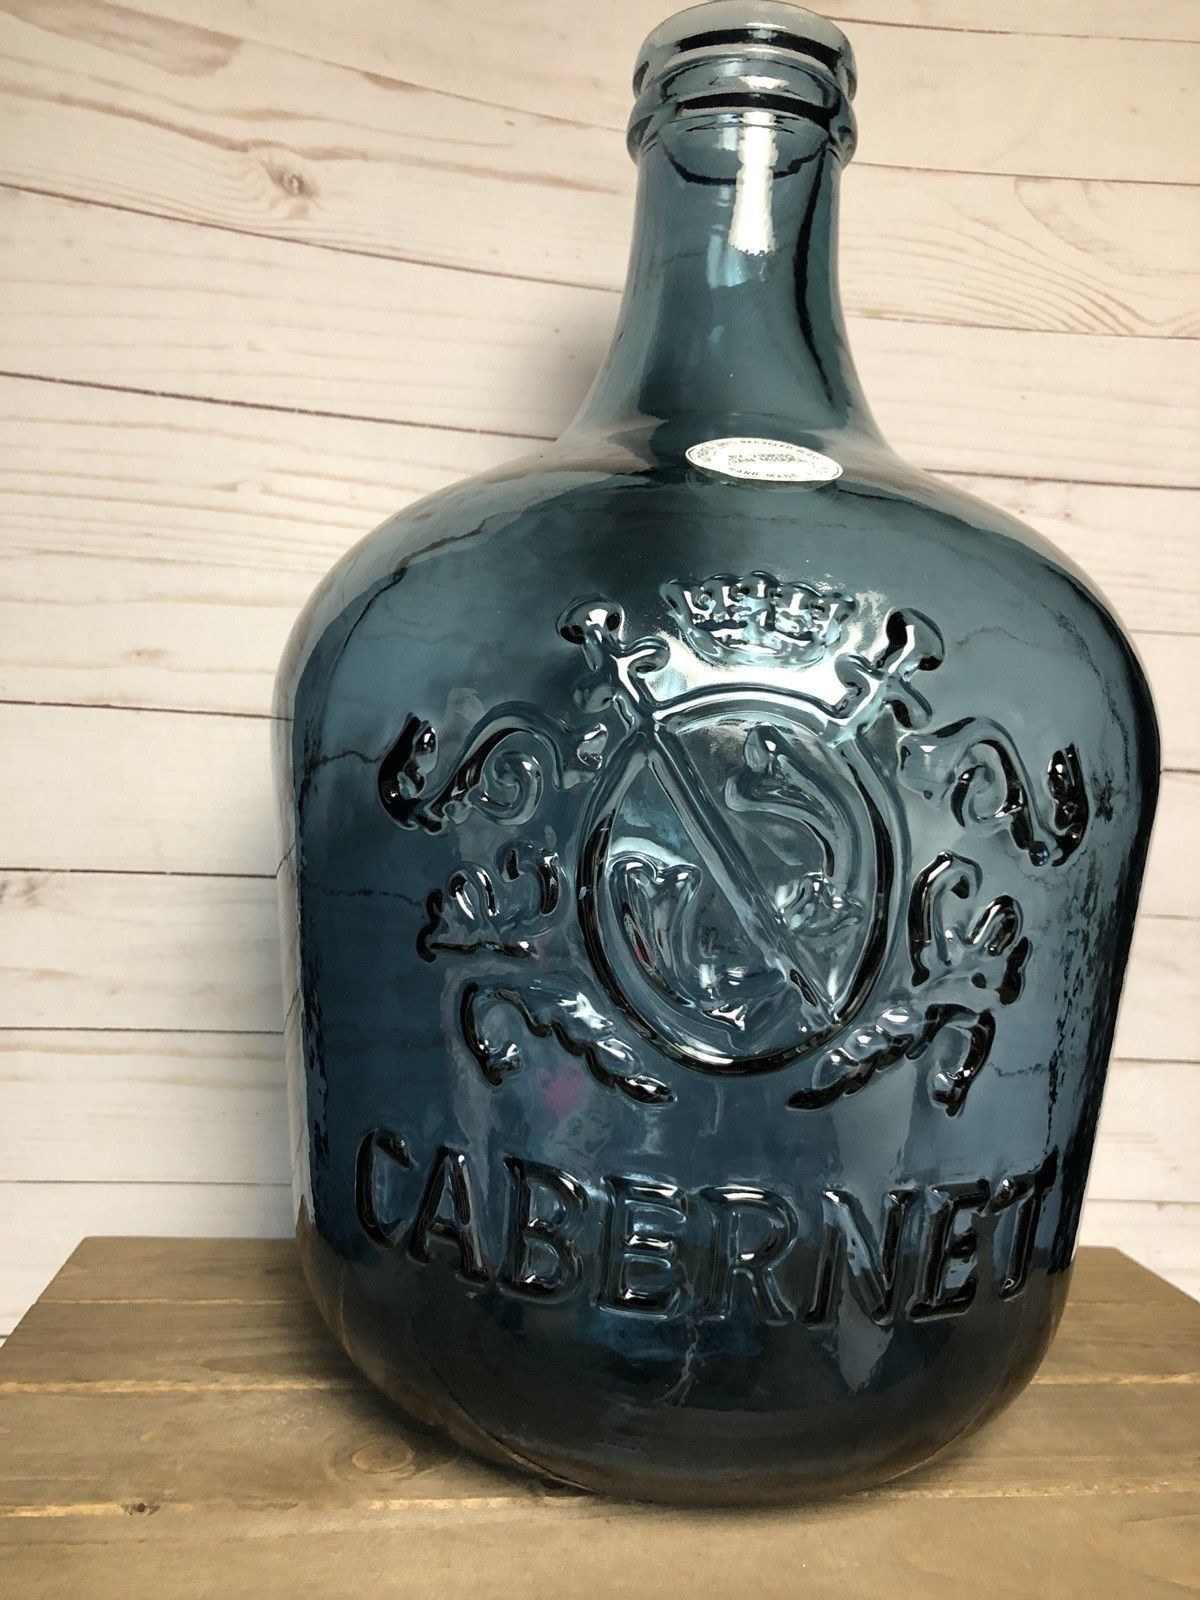 vidrios san miguel glass vase of vidrios san miguel wine jug cabernet demijohn new 5 gallon pertaining to vidrios san miguel wine jug cabernet demijohn new 5 gallon recycled glass 1 of 2 see more